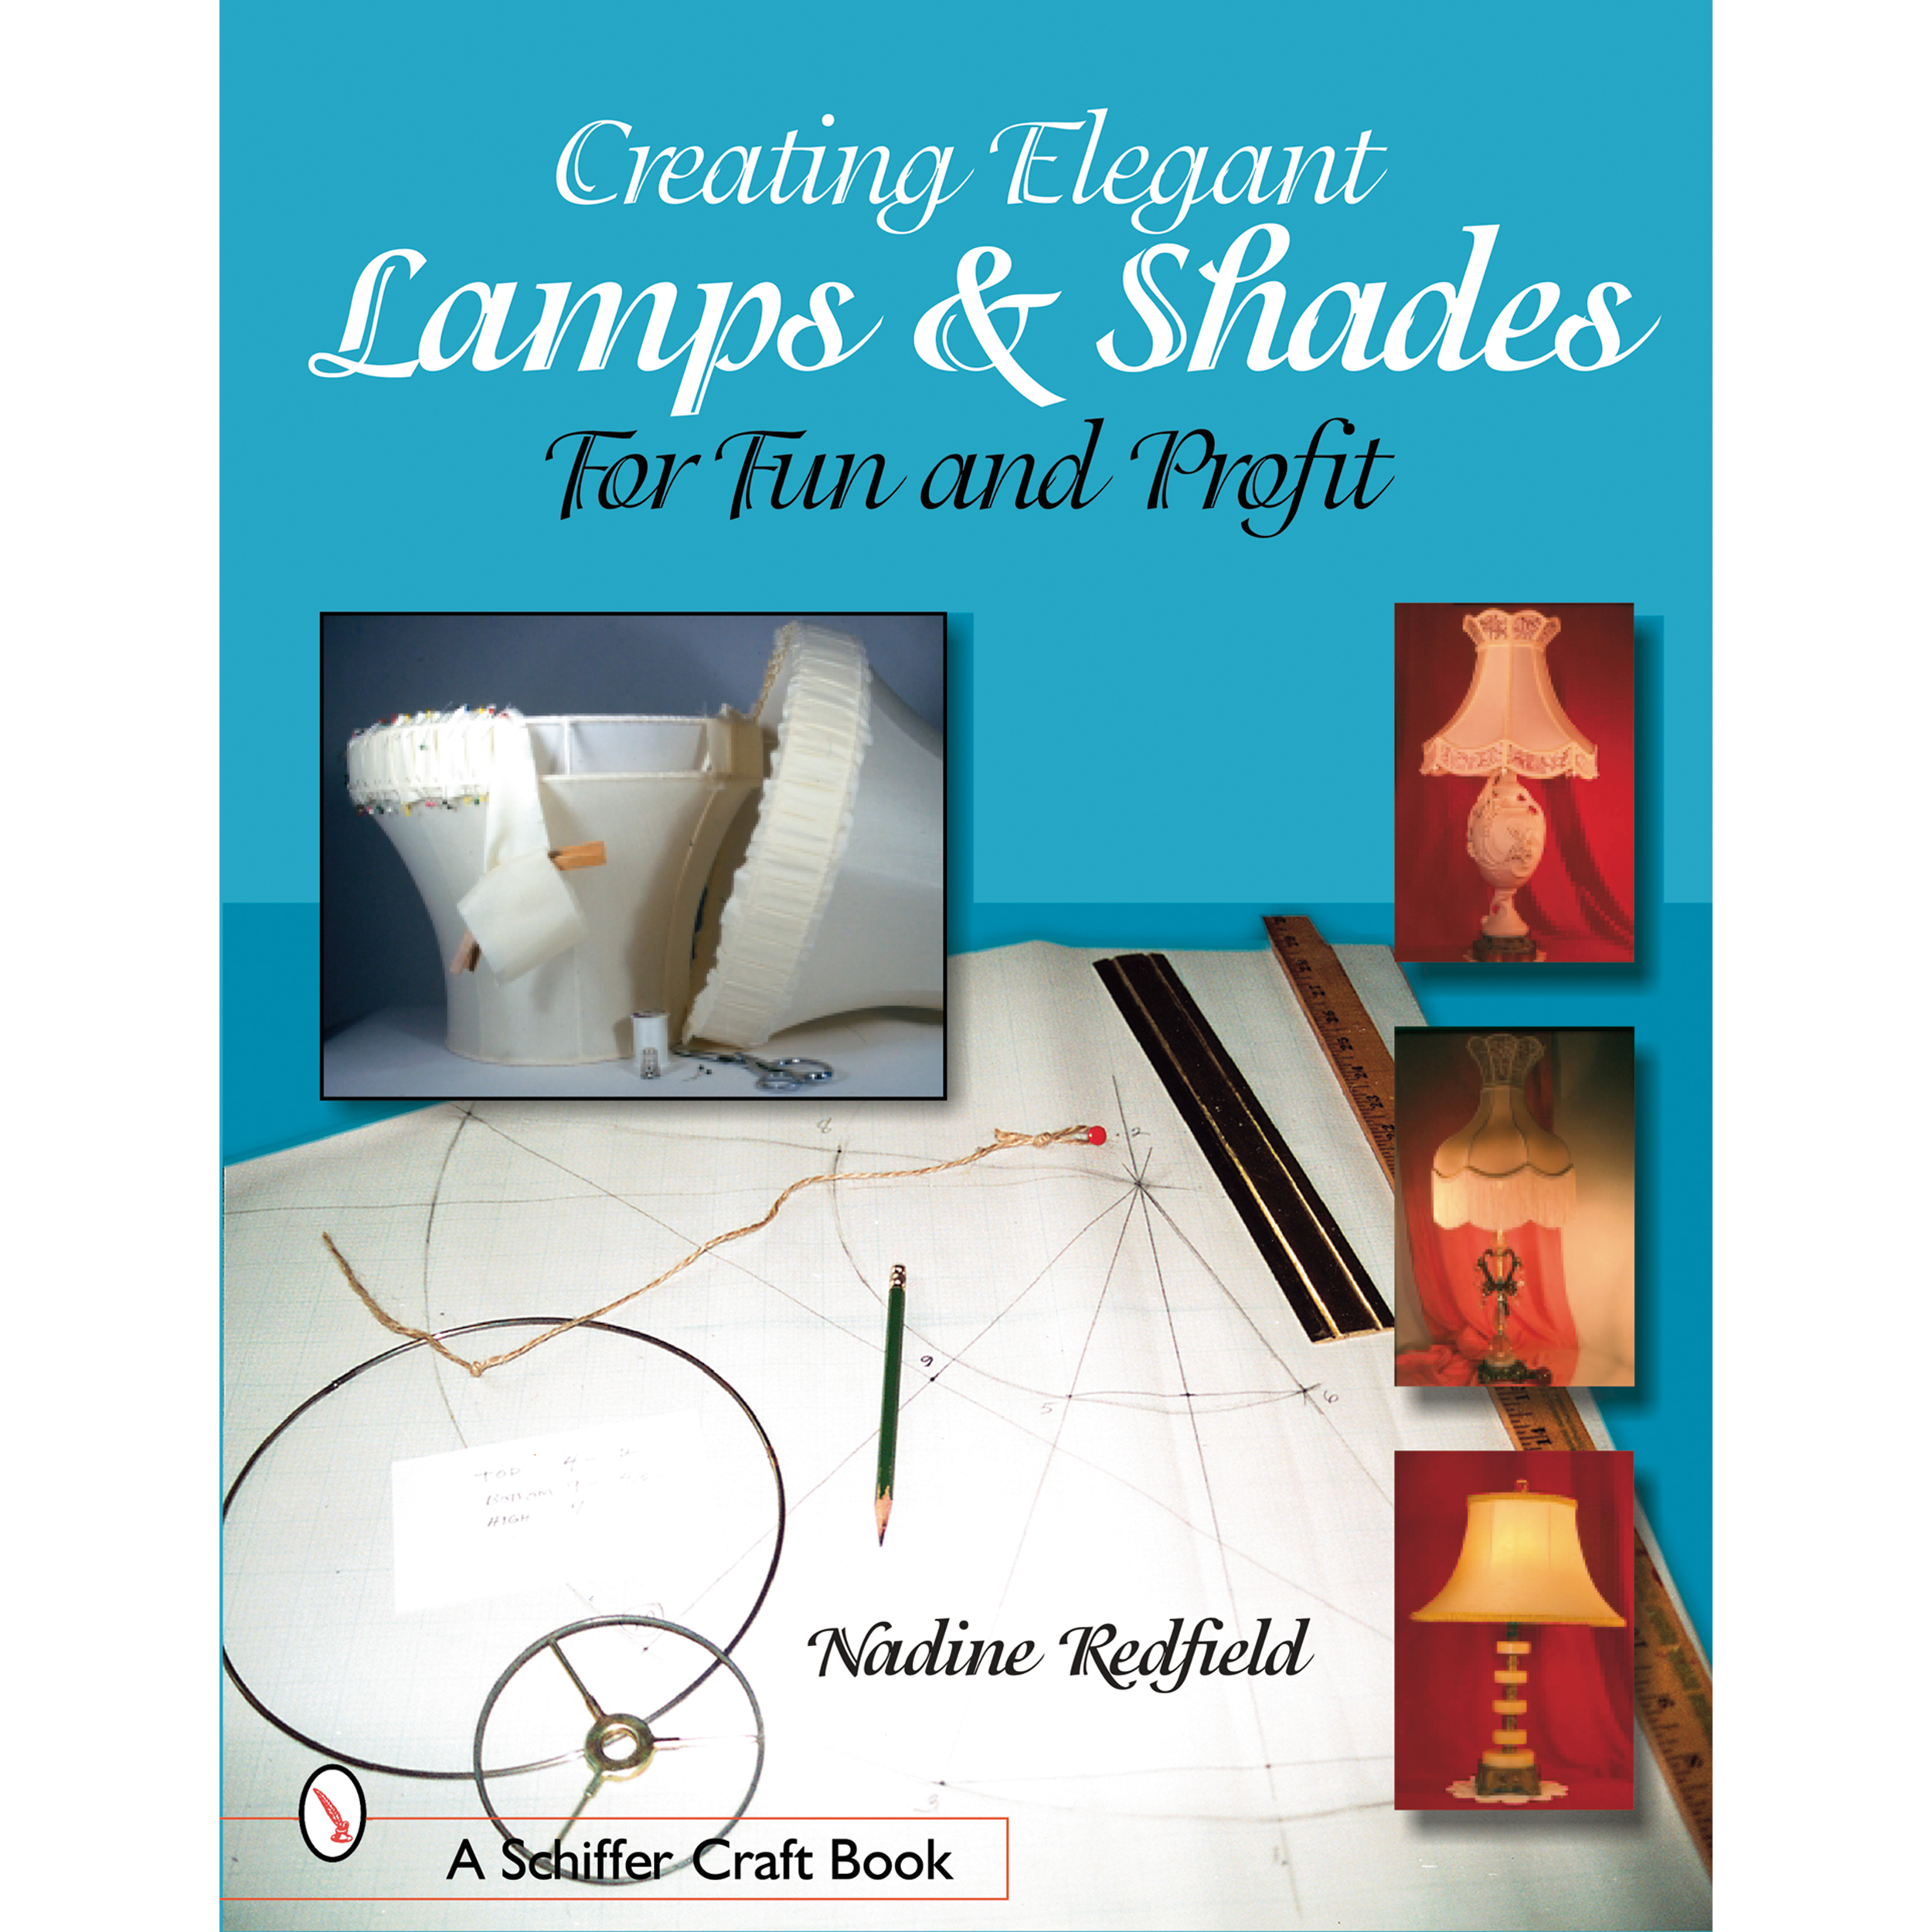 Creating Elegant Lamps & Shades: For Fun and Profit